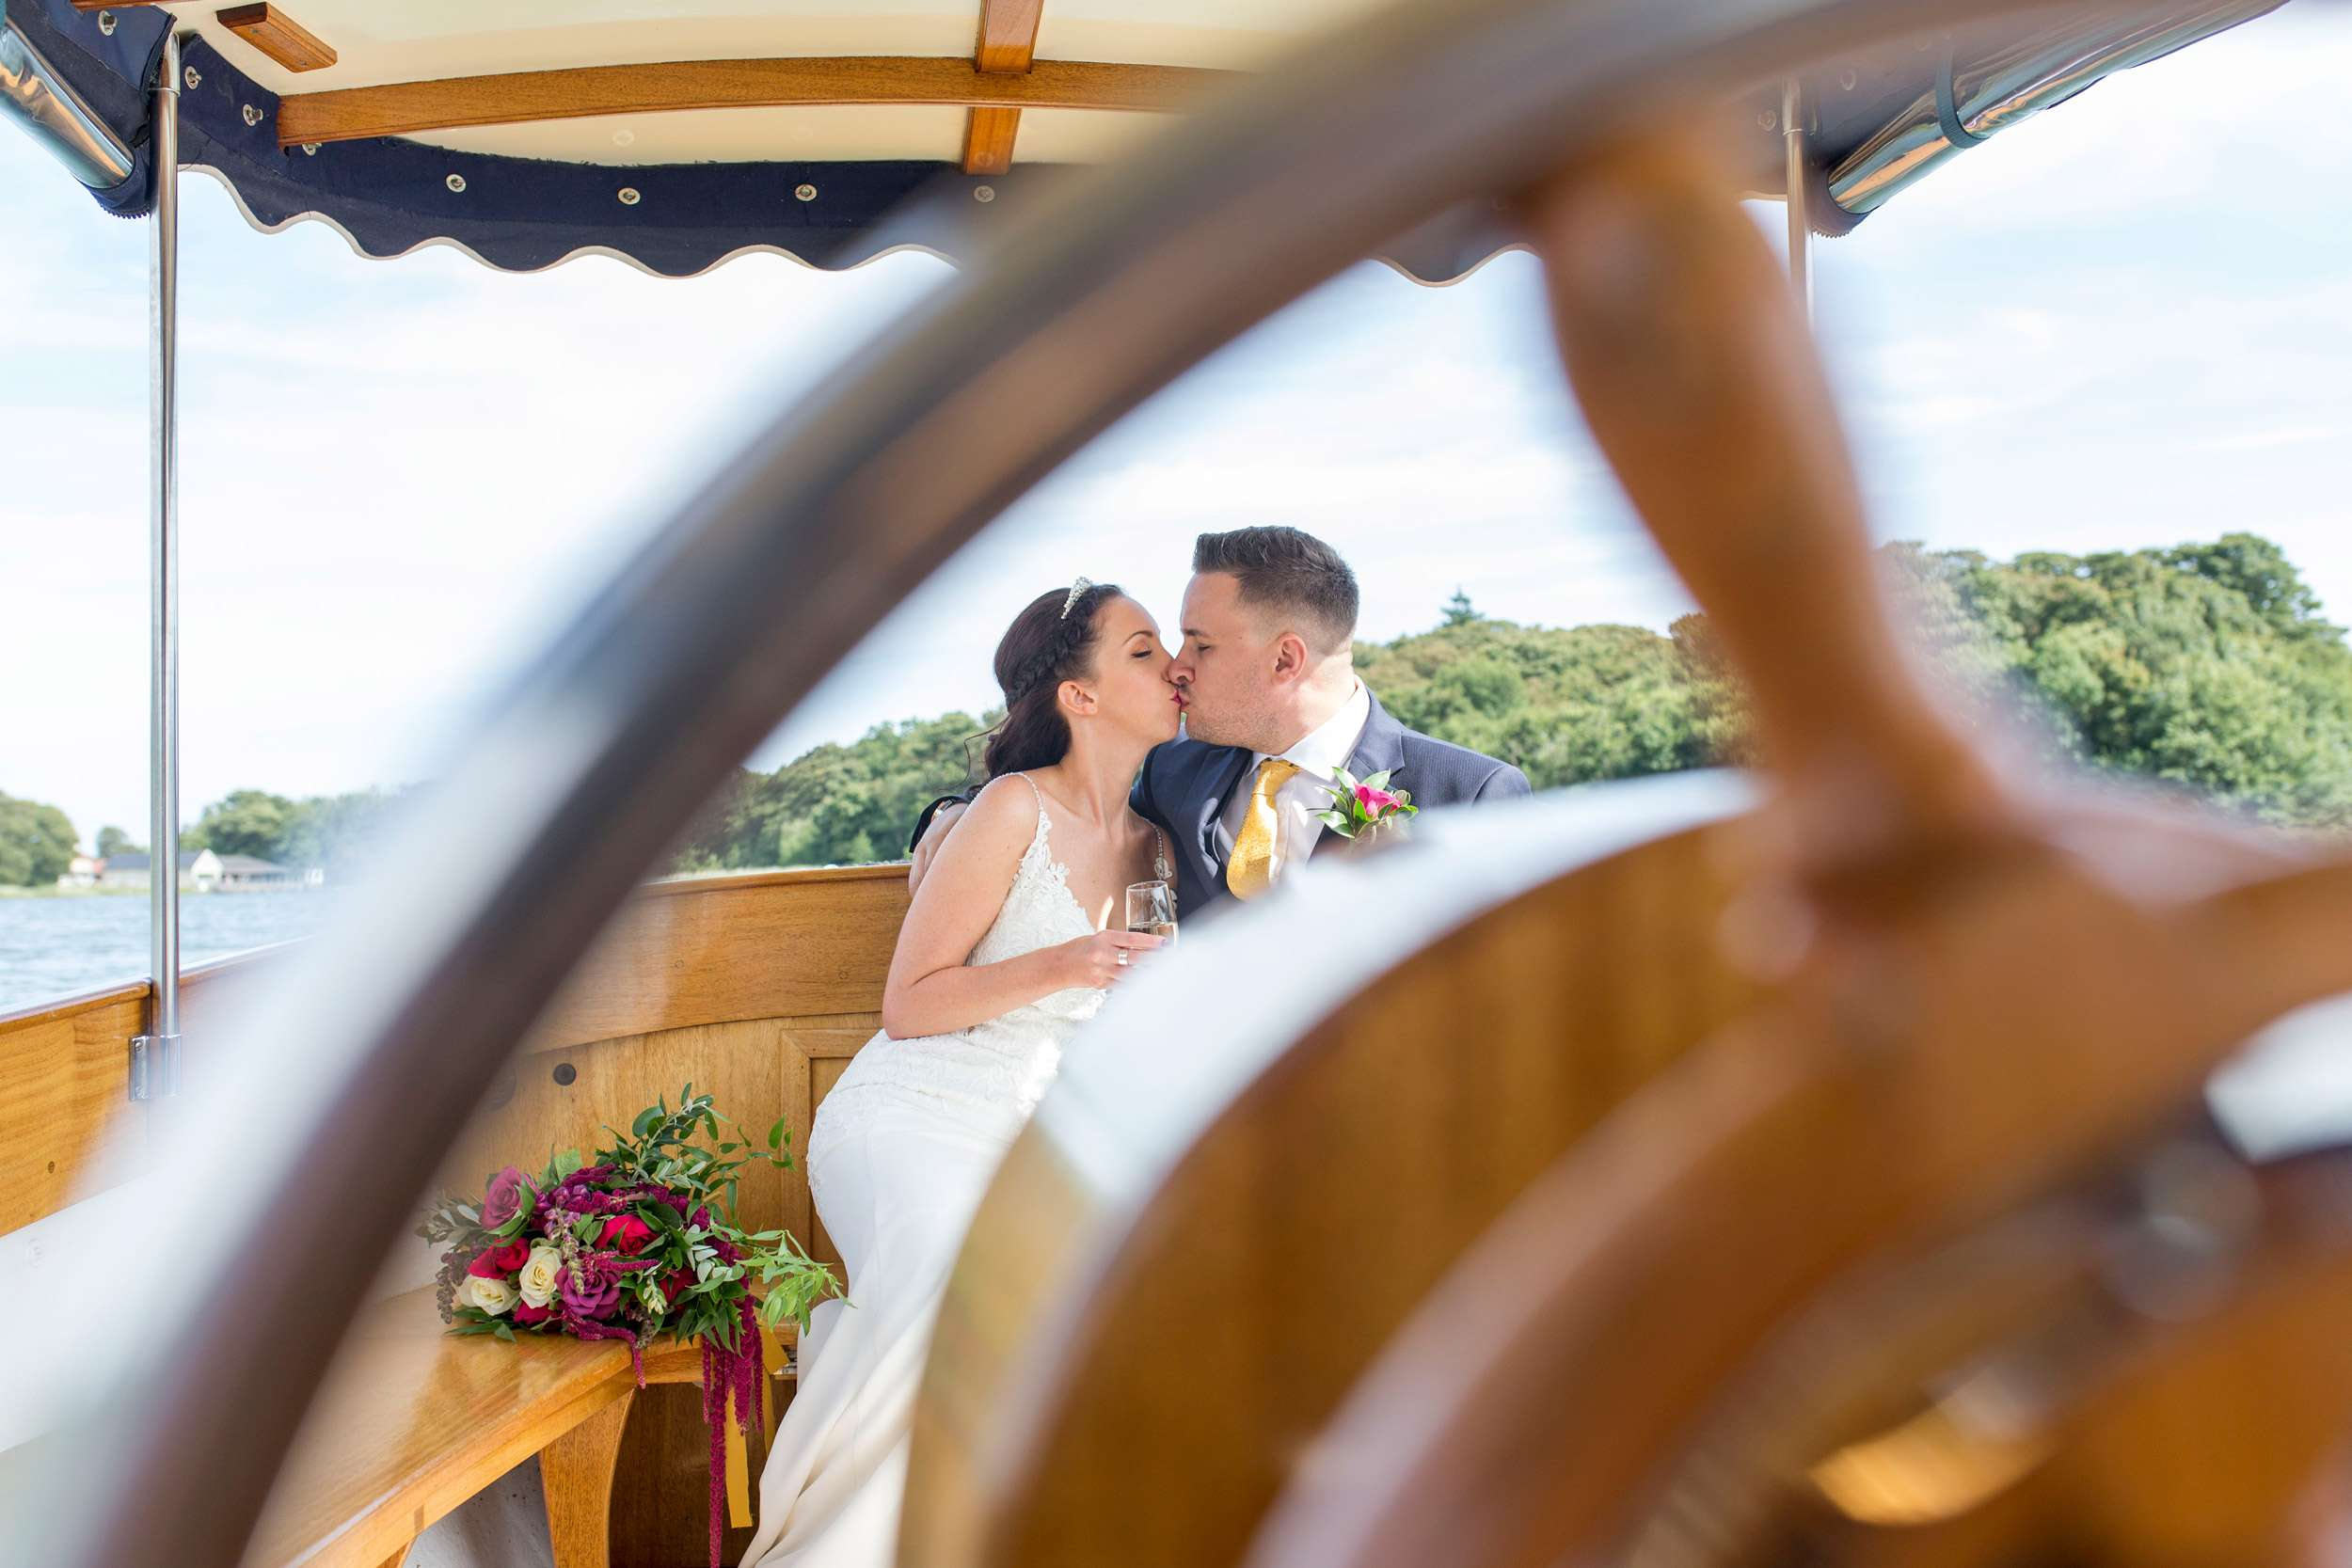 Bride & Groom kissing on the boat at The Boat House wedding. Photo is taken through the steering wheel of the boat